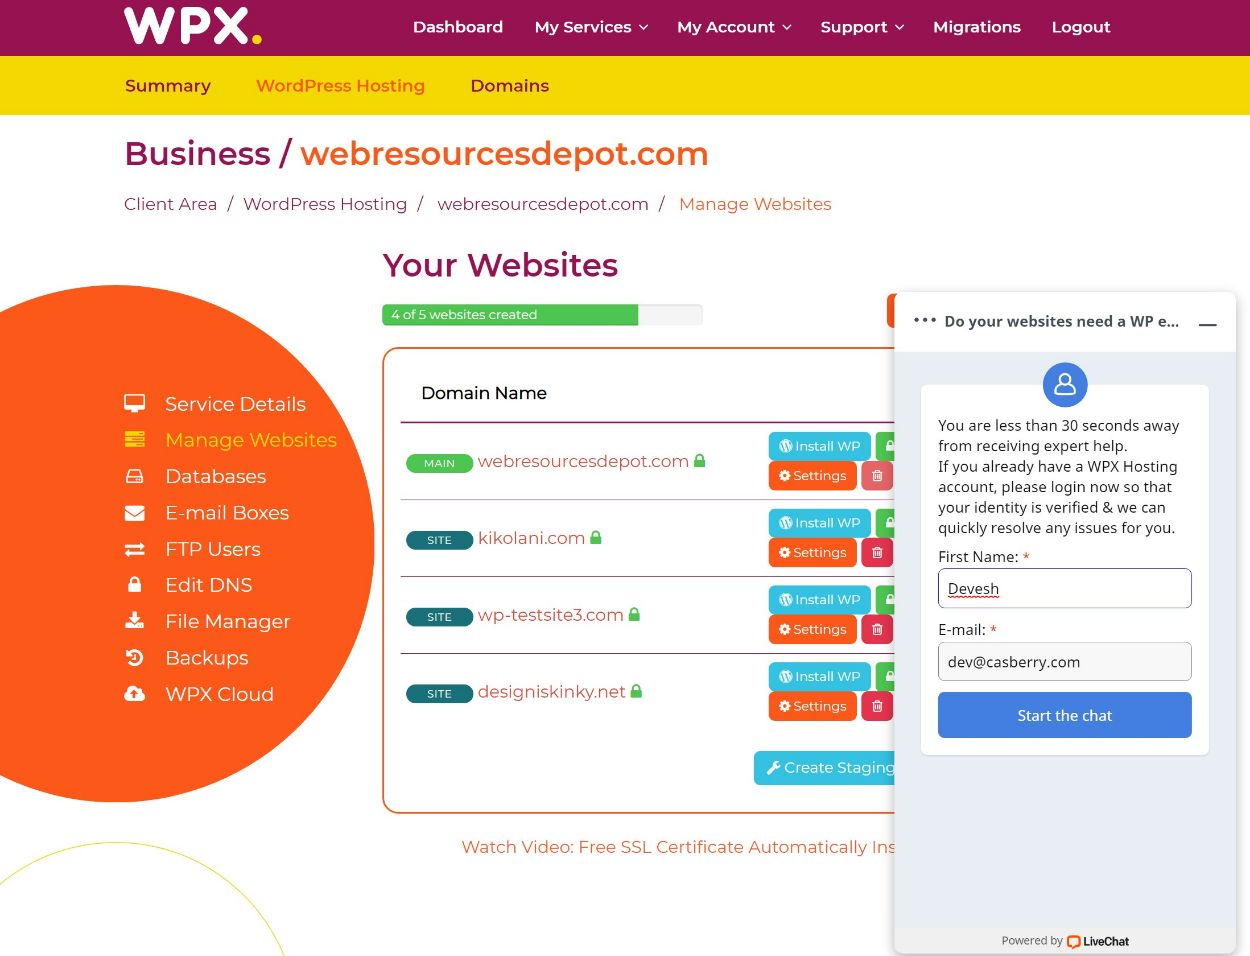 WPX hosting live chat support